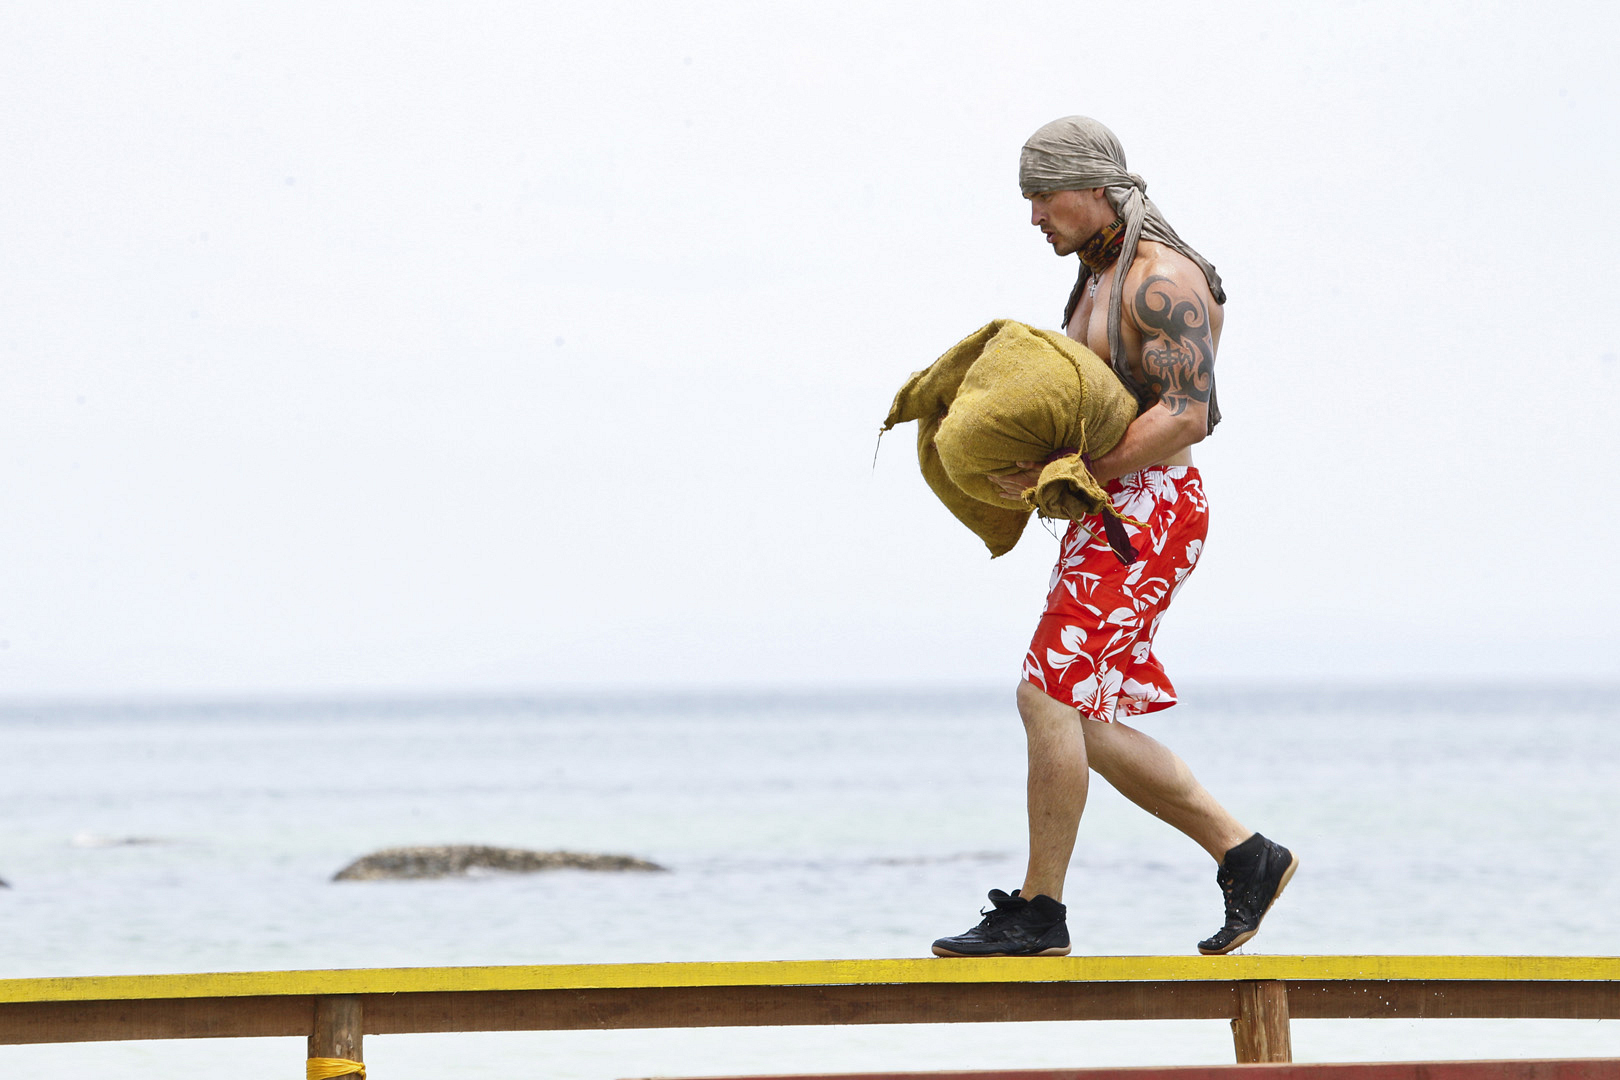 In this challenge, Caleb carries a heavy load of rice like a pro.